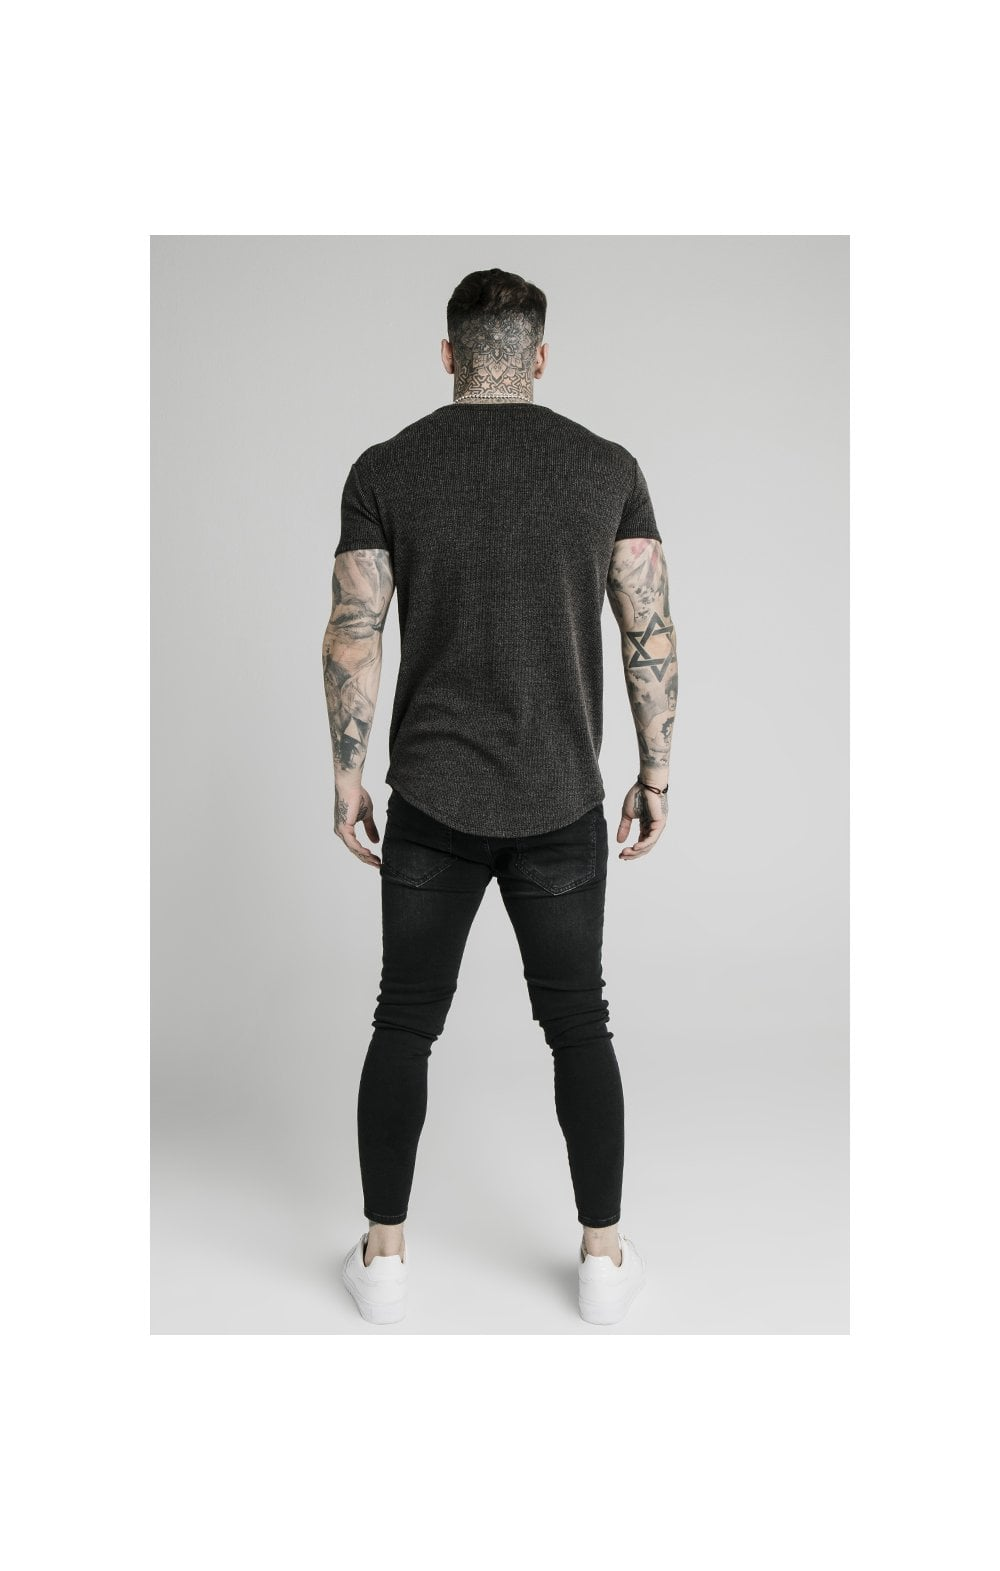 Load image into Gallery viewer, SikSilk Rib Knit Gym Tee - Black (5)